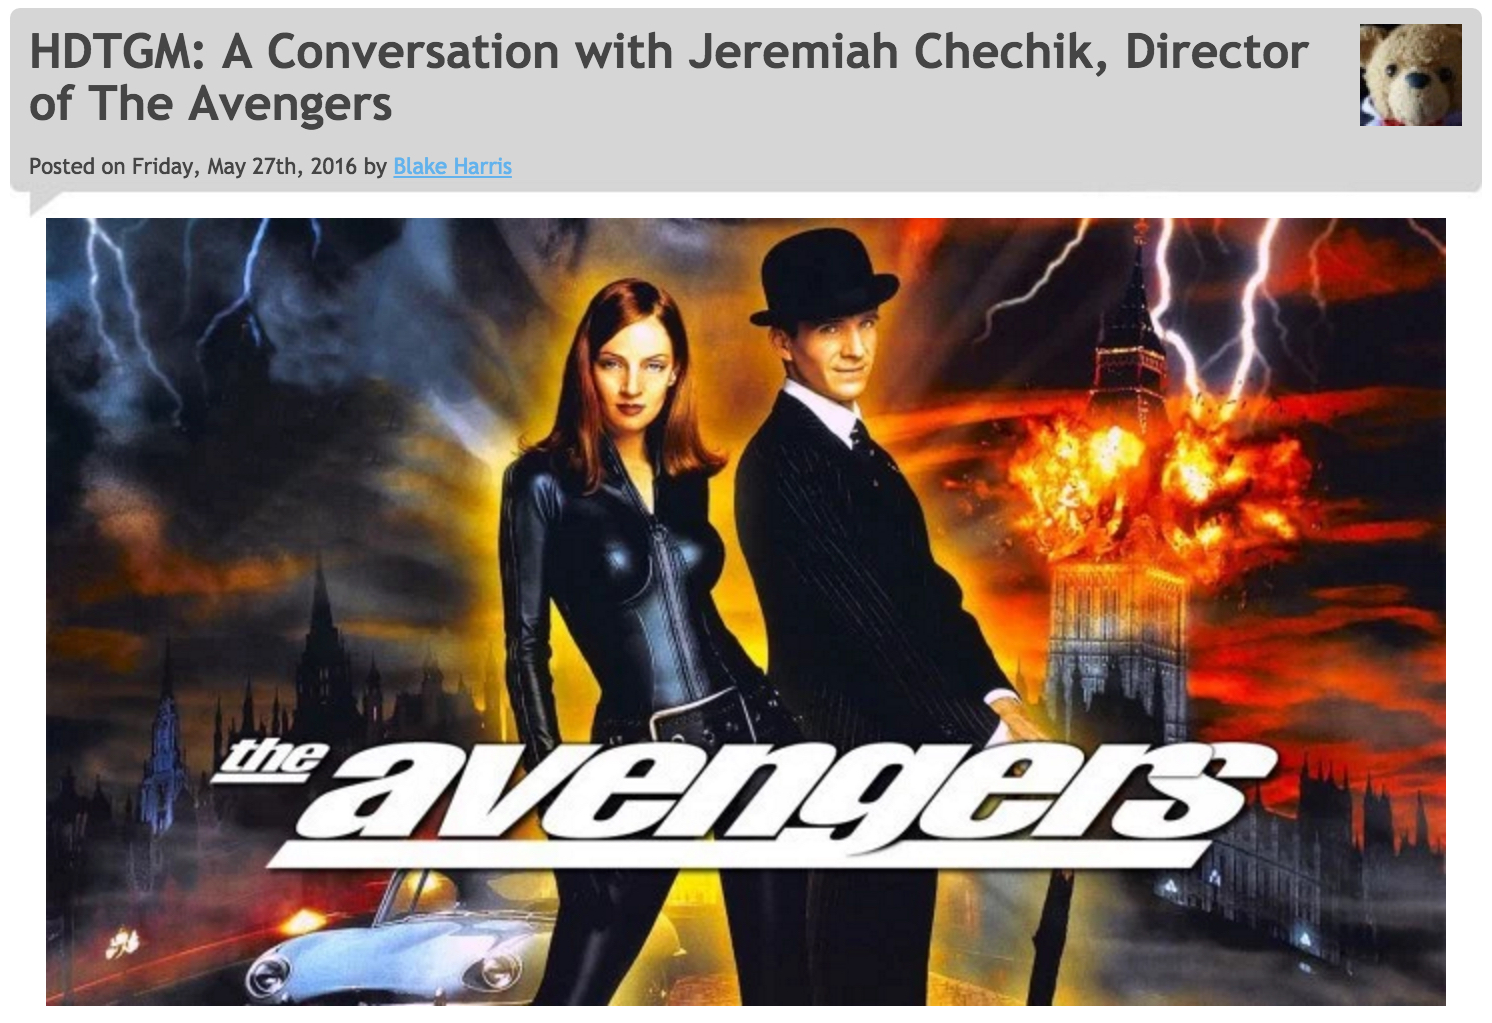 5/27/16: THE AVENGERS (A Conversation with Jeremiah Chechik)